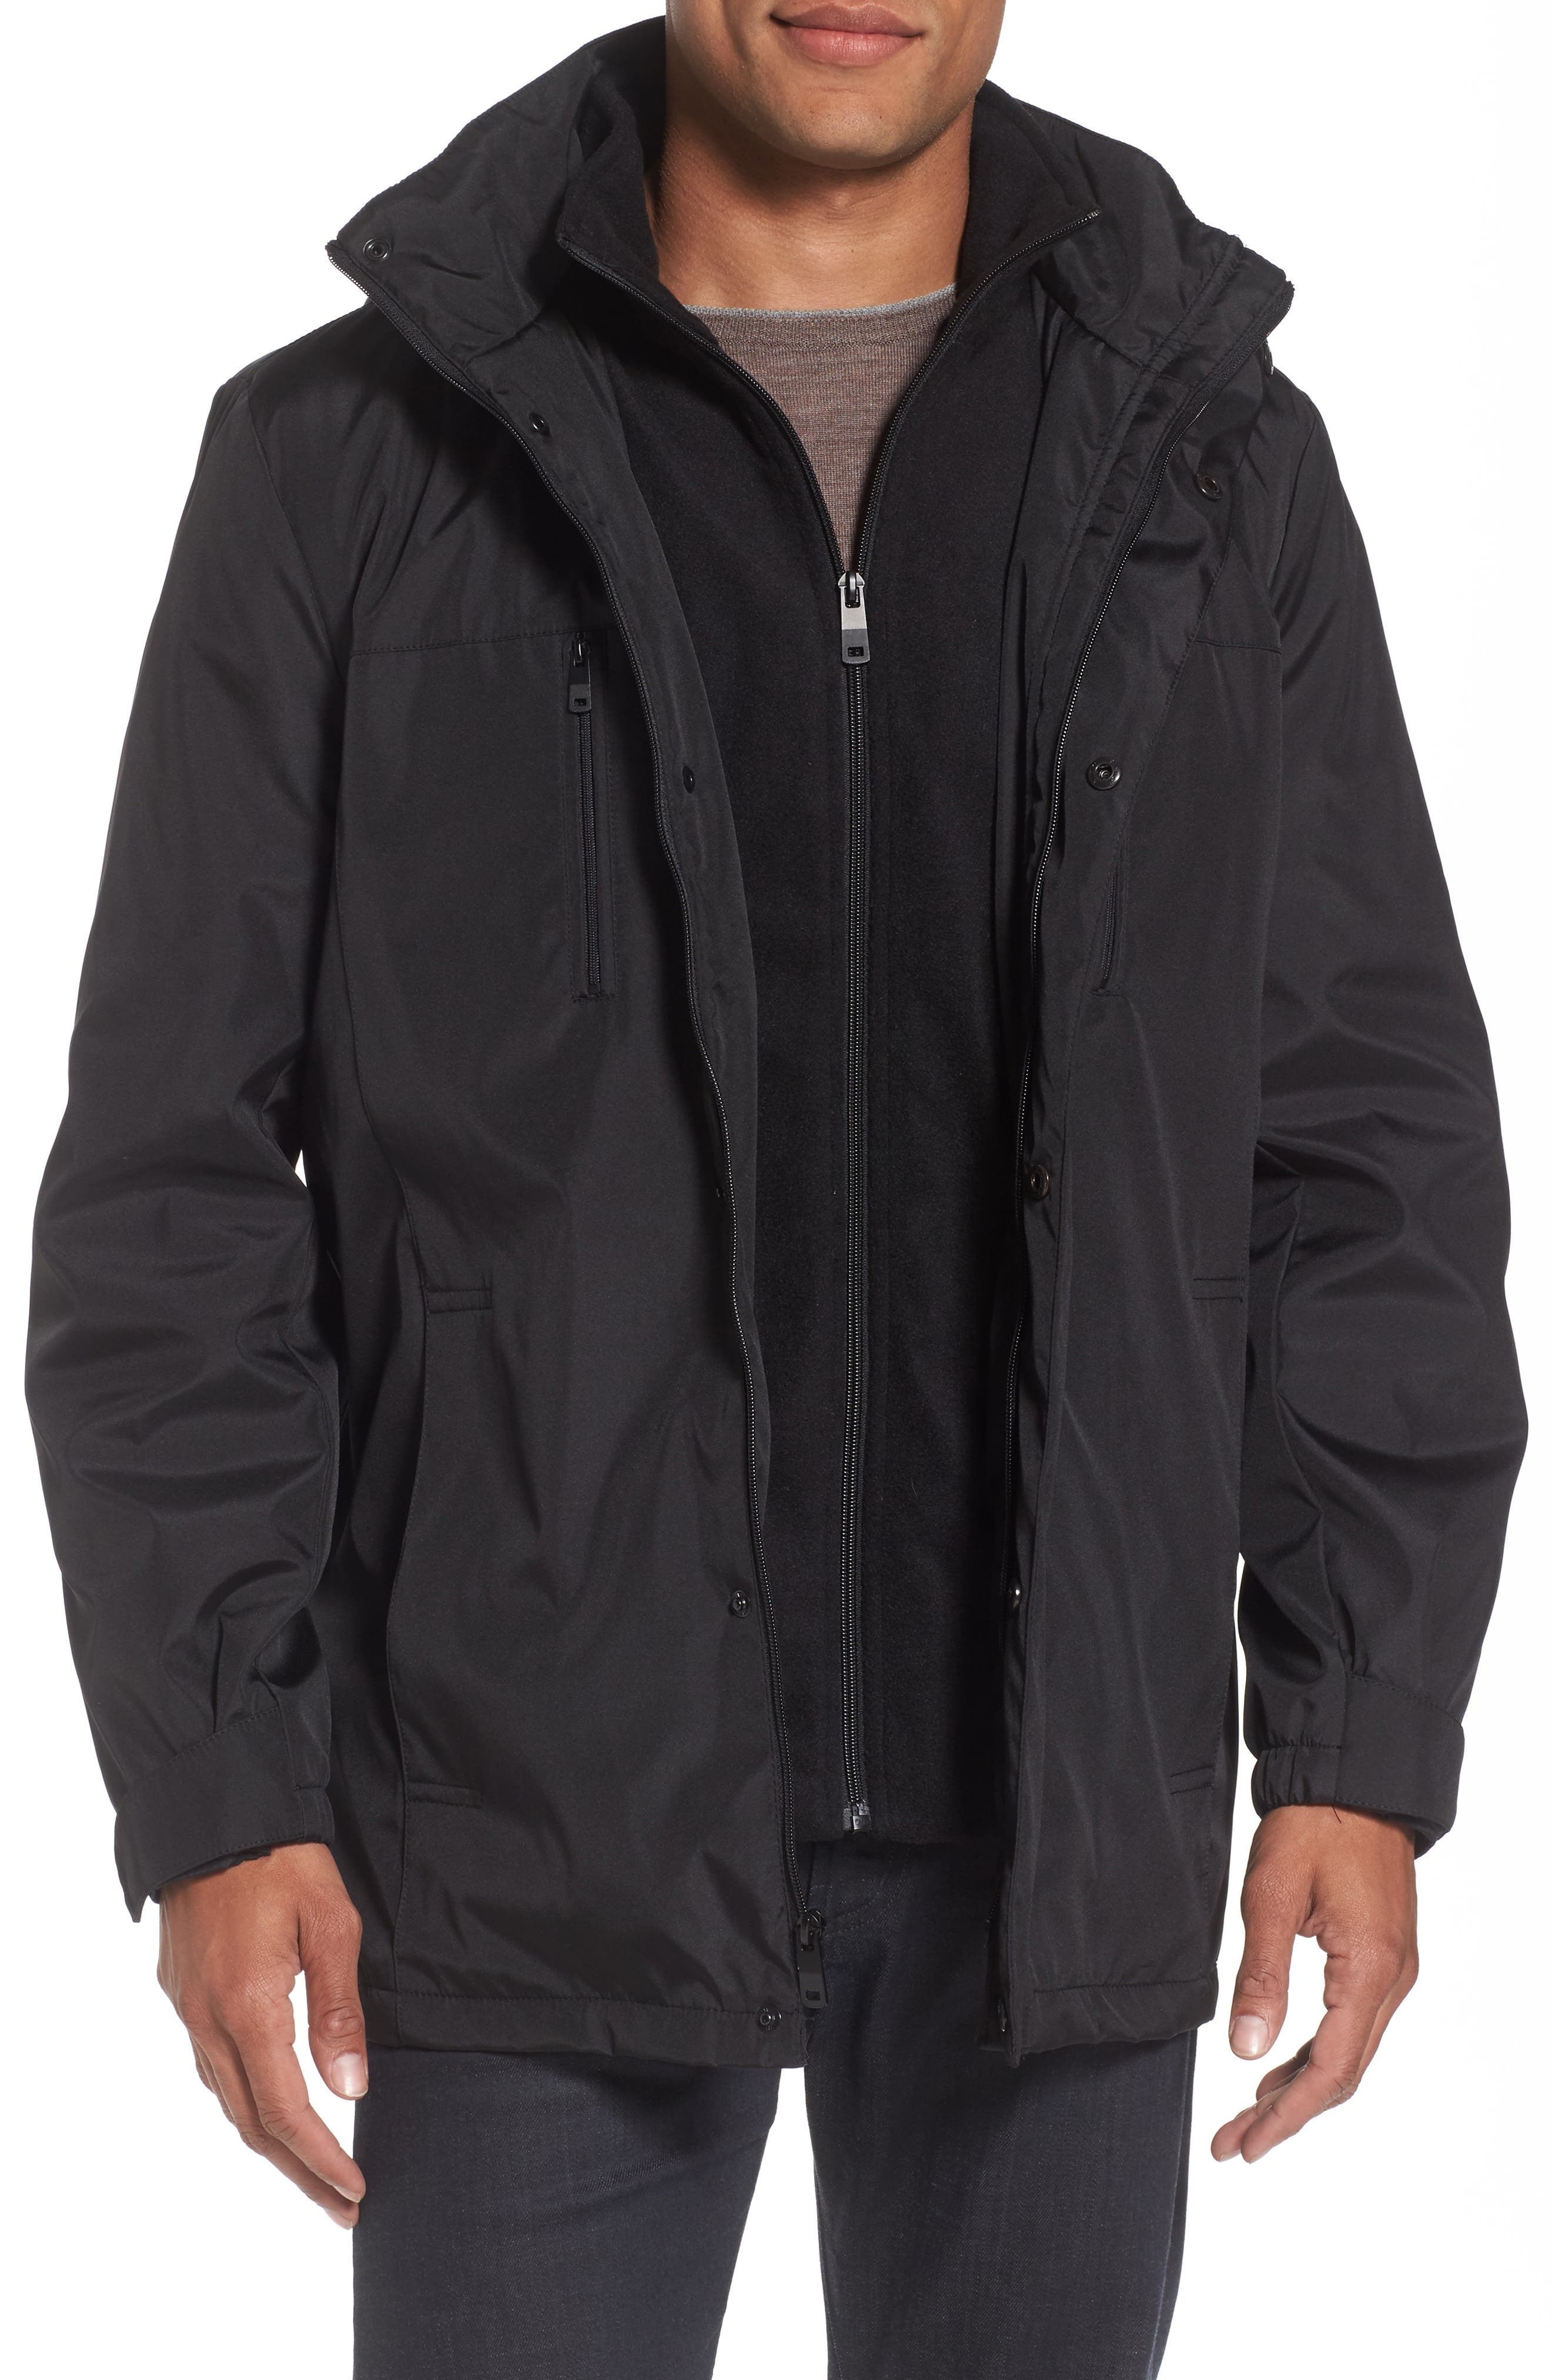 Main Image - Reaction Kenneth Cole Hooded Jacket with Inset Fleece Bib